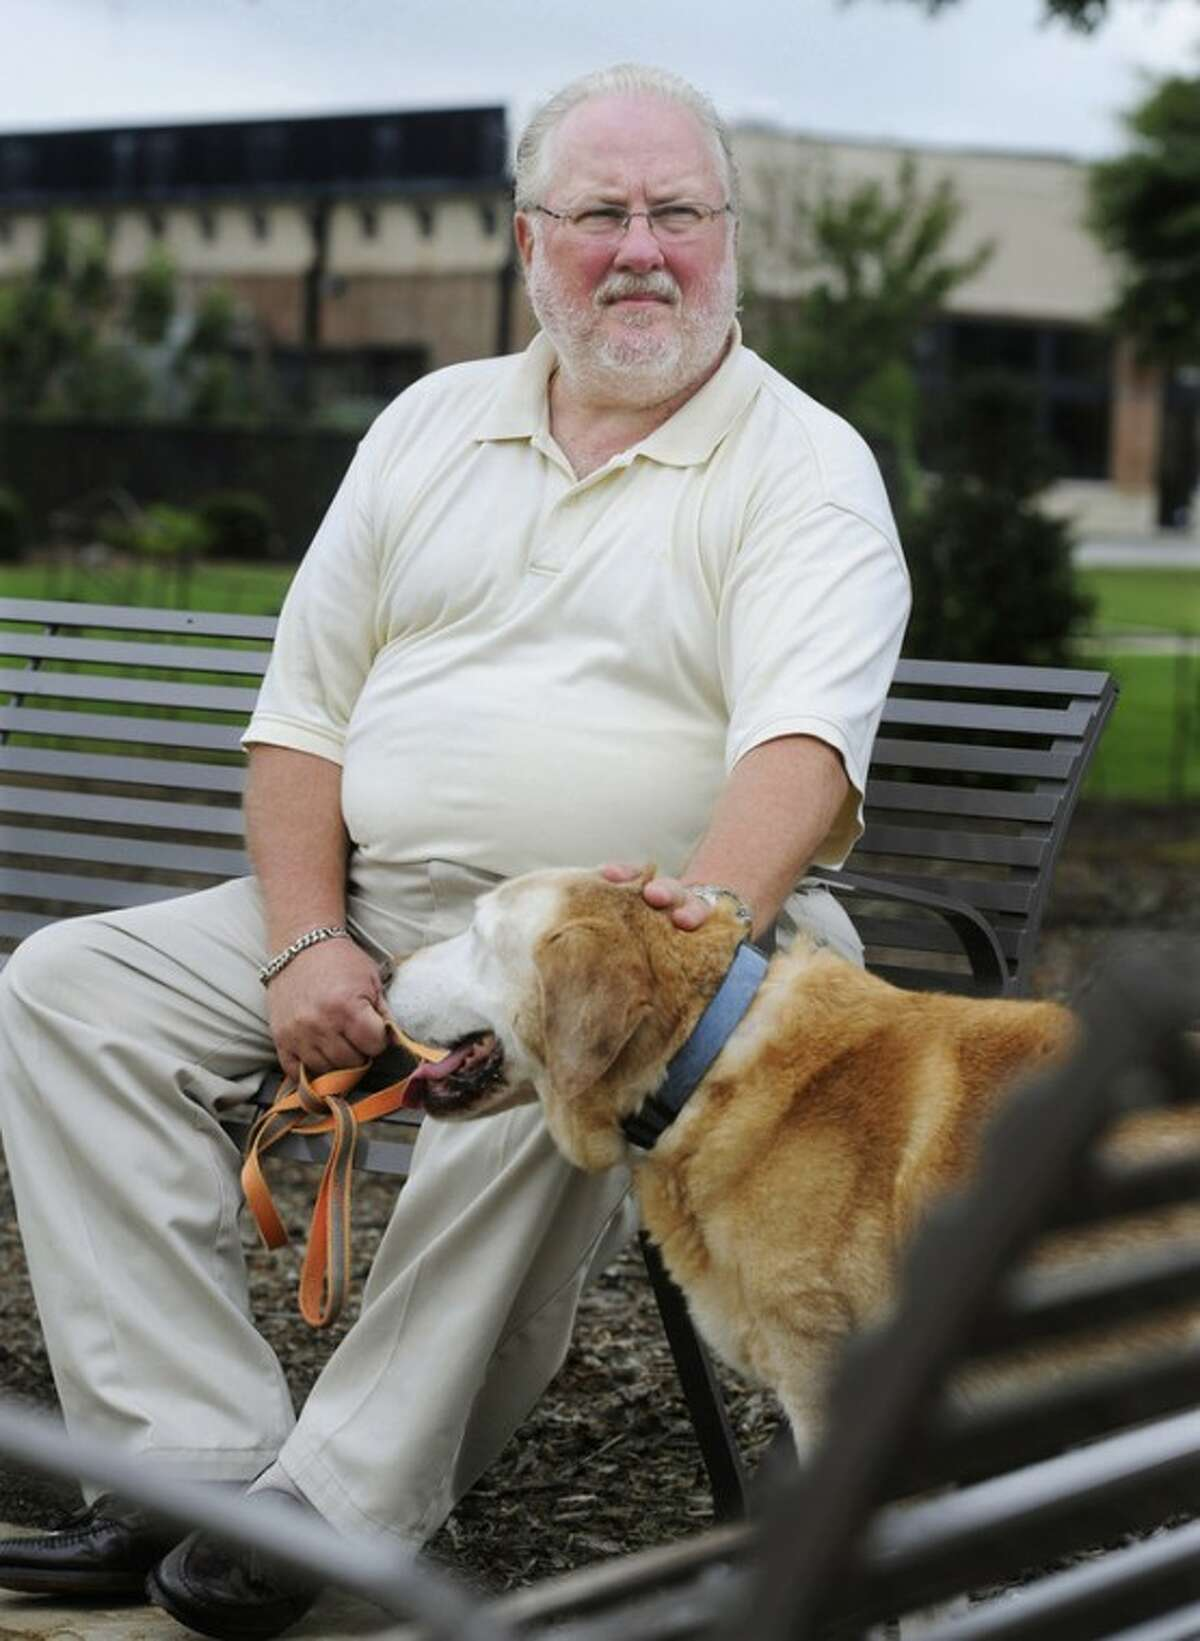 Greg Mann, an unemployed research analyst and real estate appraiser, sits with his dog Oz at a park near his home, Tuesday, Aug. 14, 2012, in Braselton, Ga.. The recession that ended three years ago lingers on as the worst economic recovery since the Great Depression. (AP Photo/John Amis)